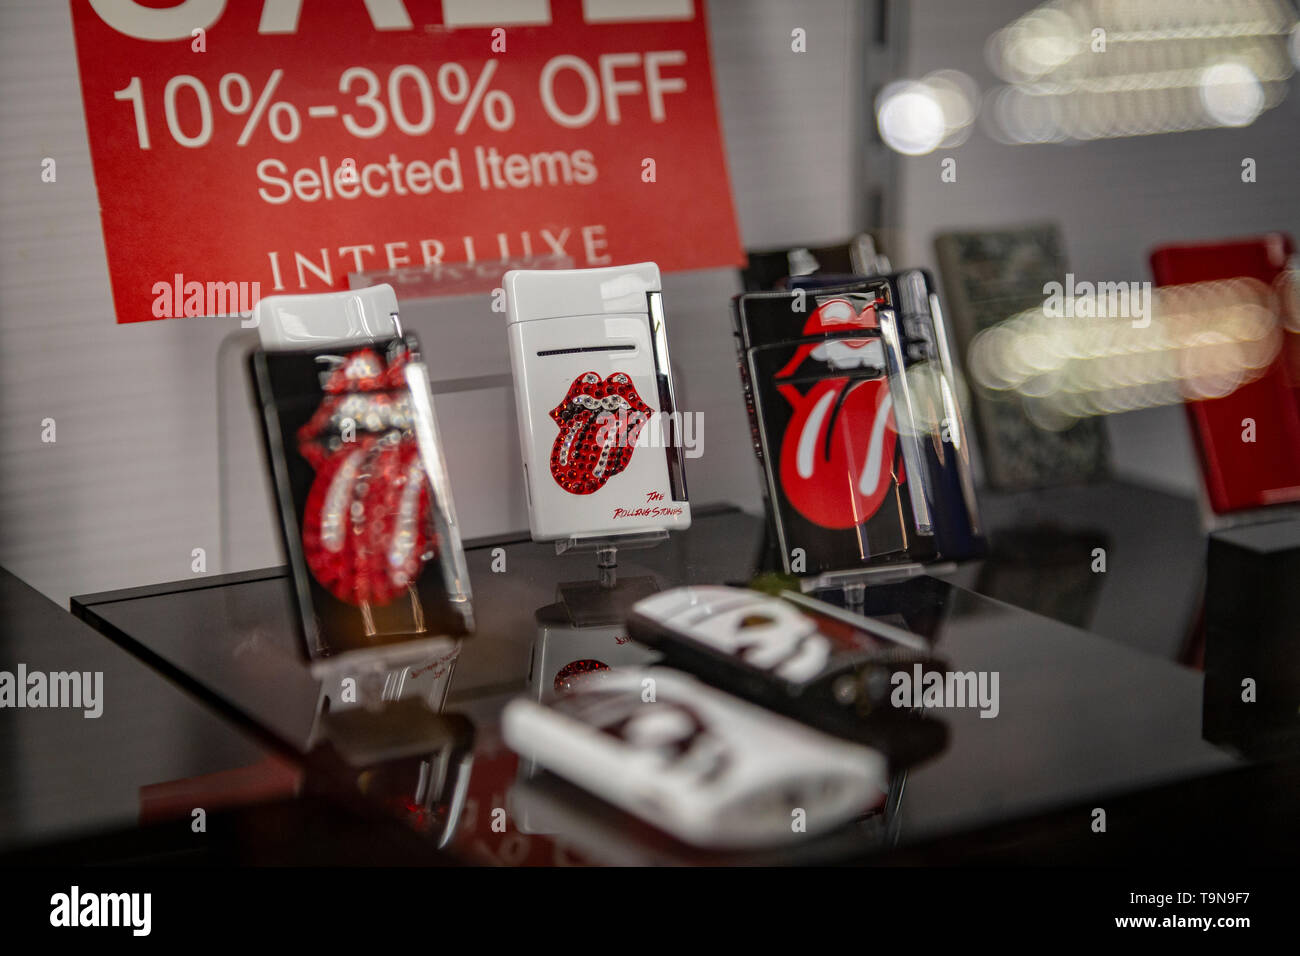 rolling stones lighter - Stock Image